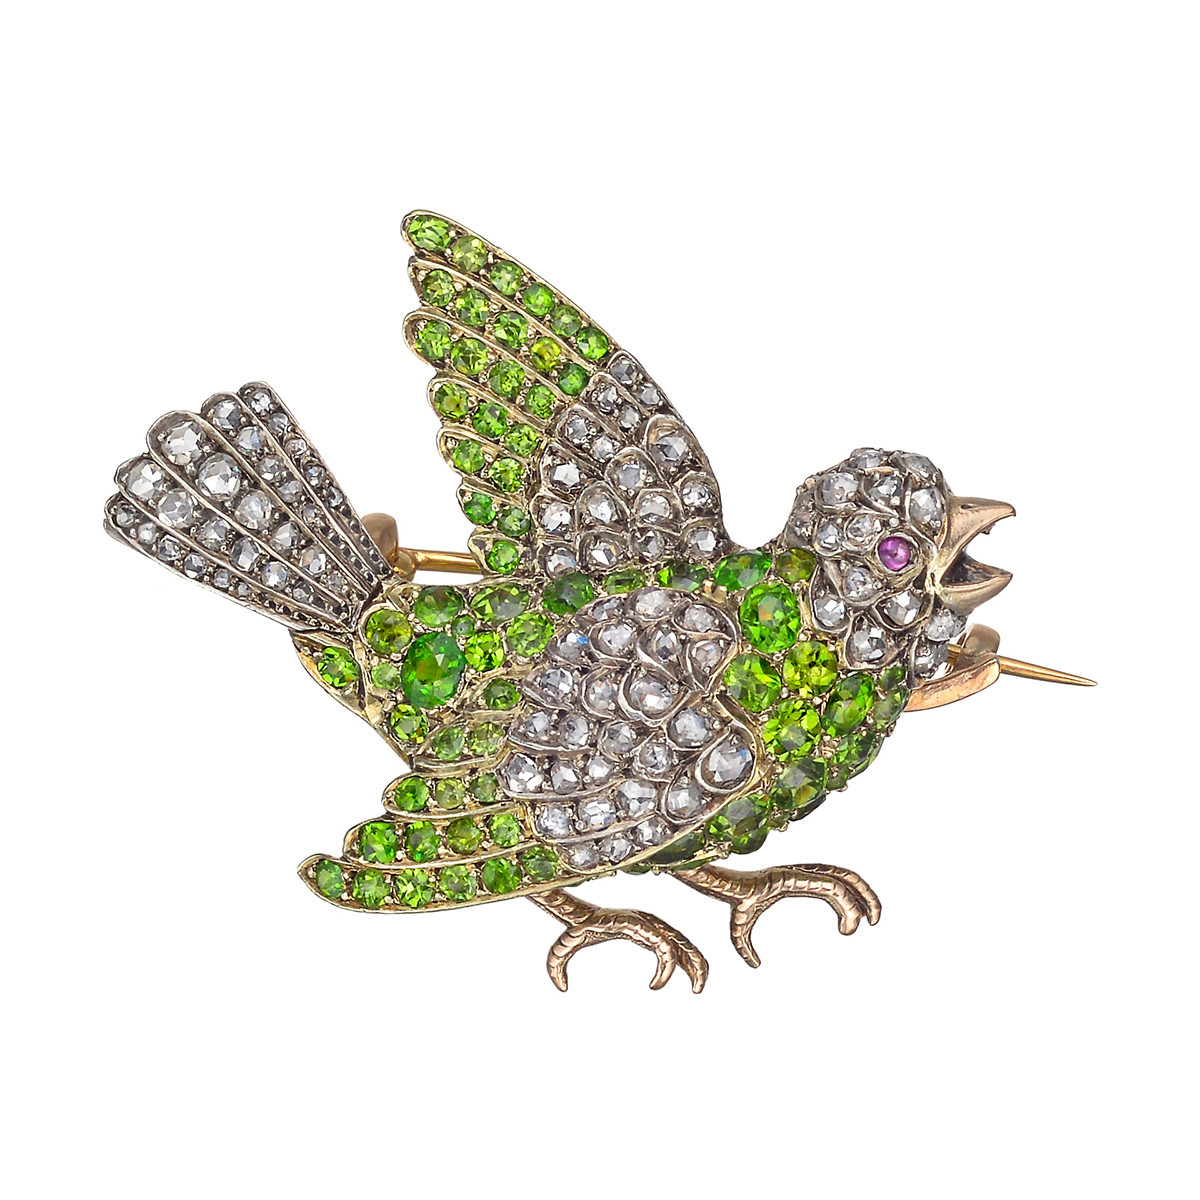 Antique Demantoid Garnet & Diamond Bird Pin